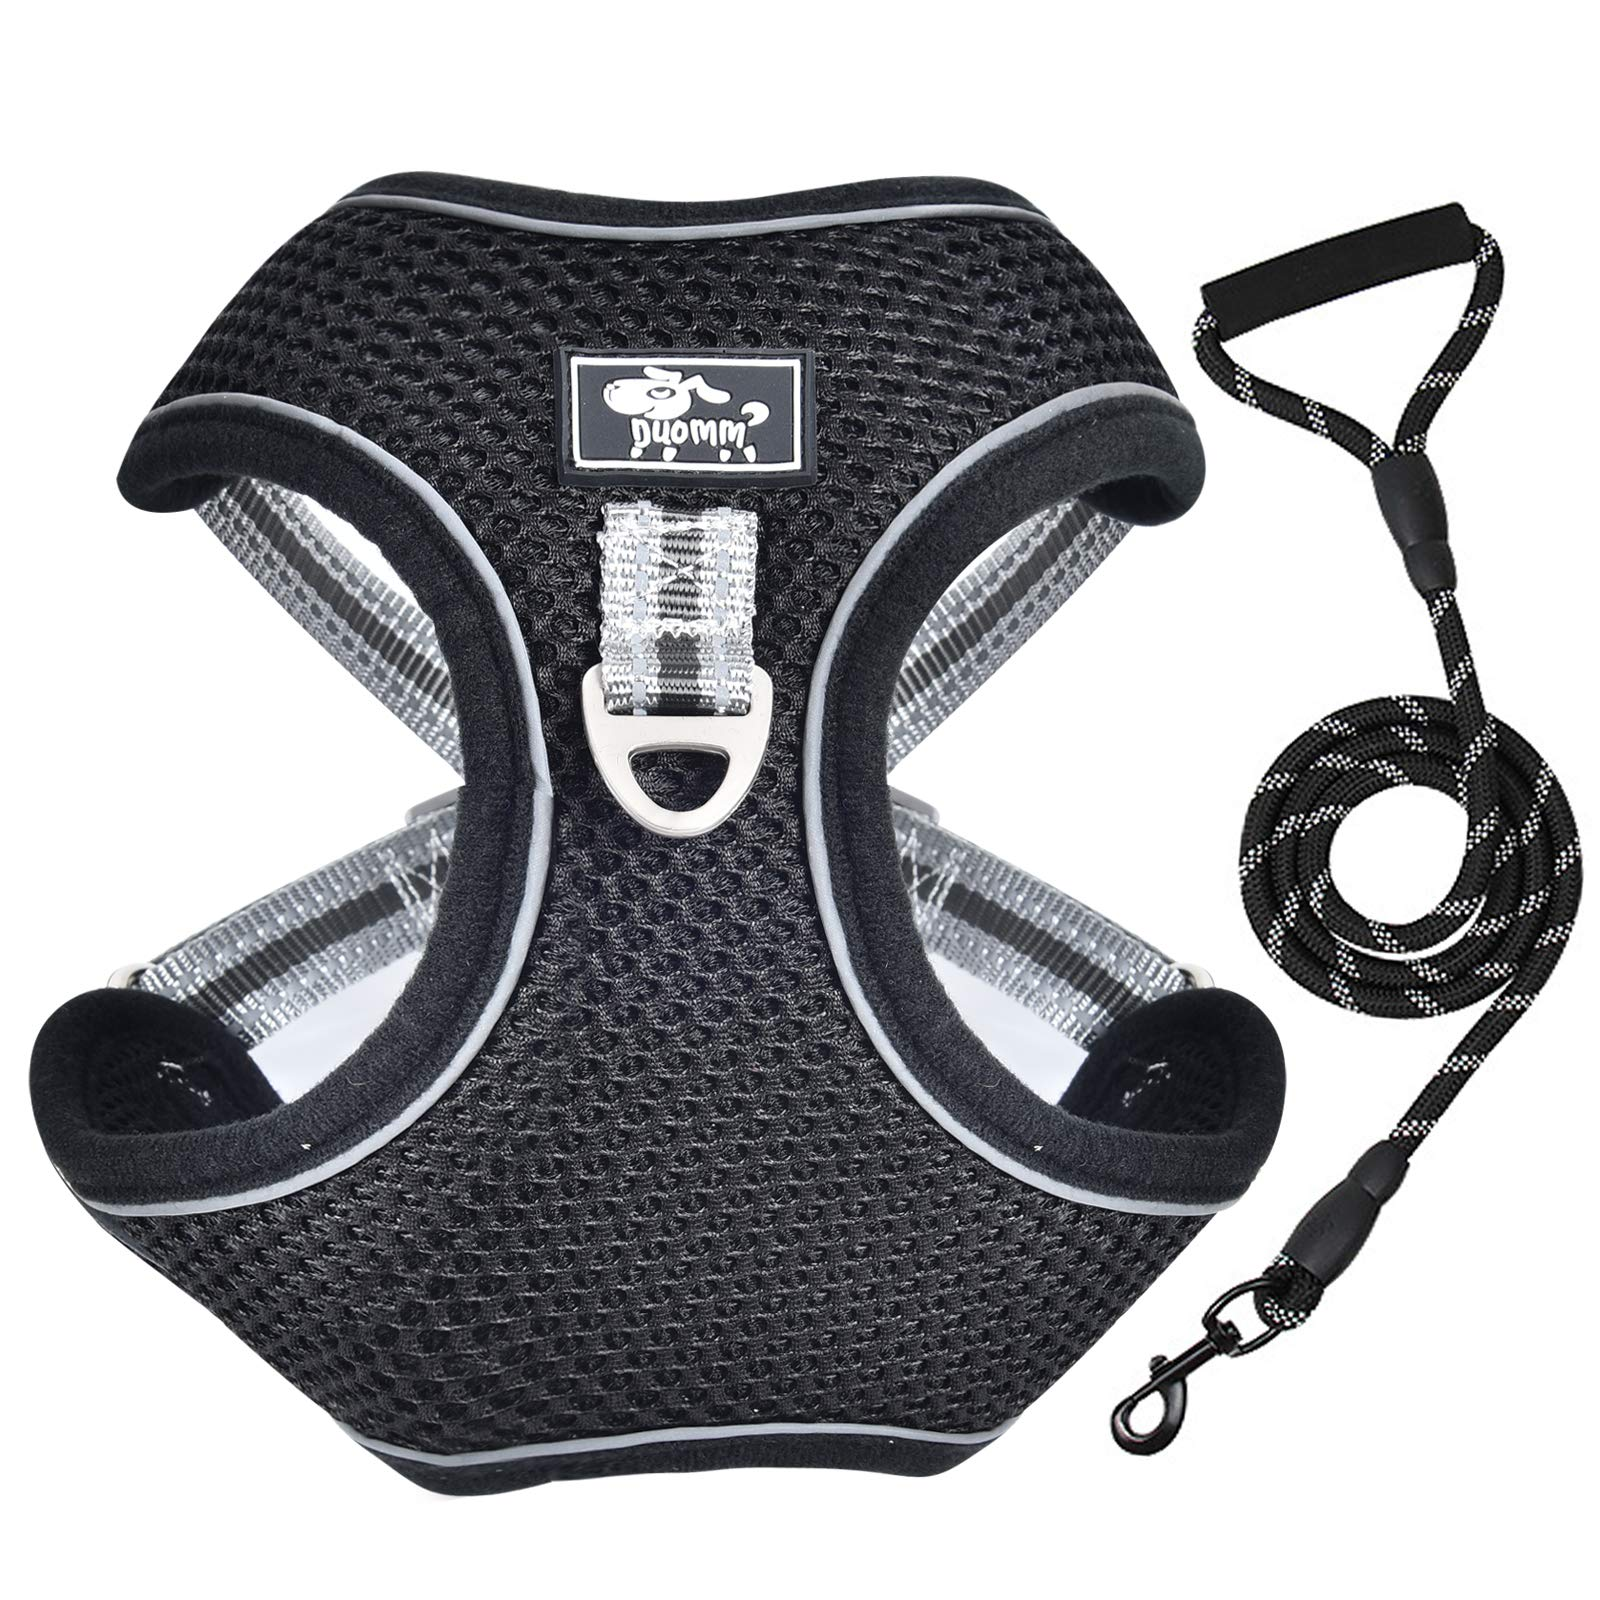 Vetasac Harness for Large Dogs No Pull Adjustable Reflective Breathable Mesh Dog Harness with Handle for Outdoor Training XB001 (XL, Black)